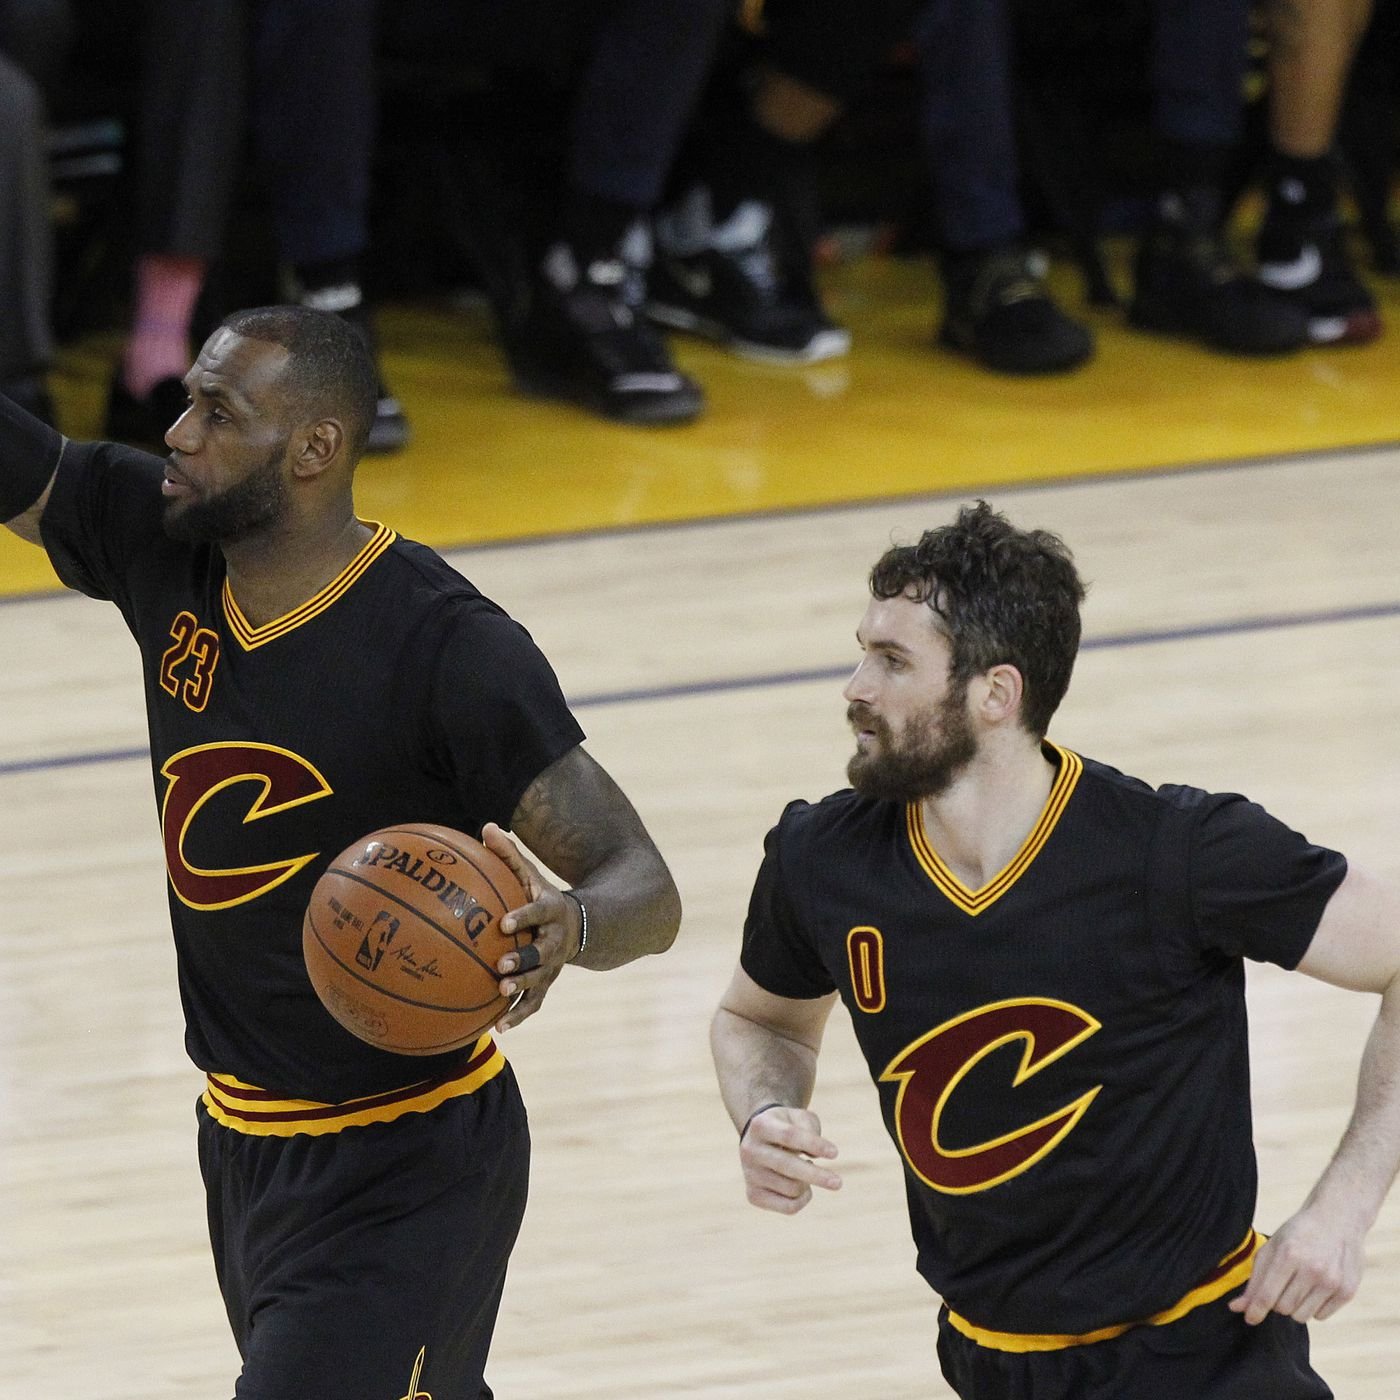 71a06dbe5996 Kevin Love wanted a high-five from LeBron but got yelled at instead -  SBNation.com